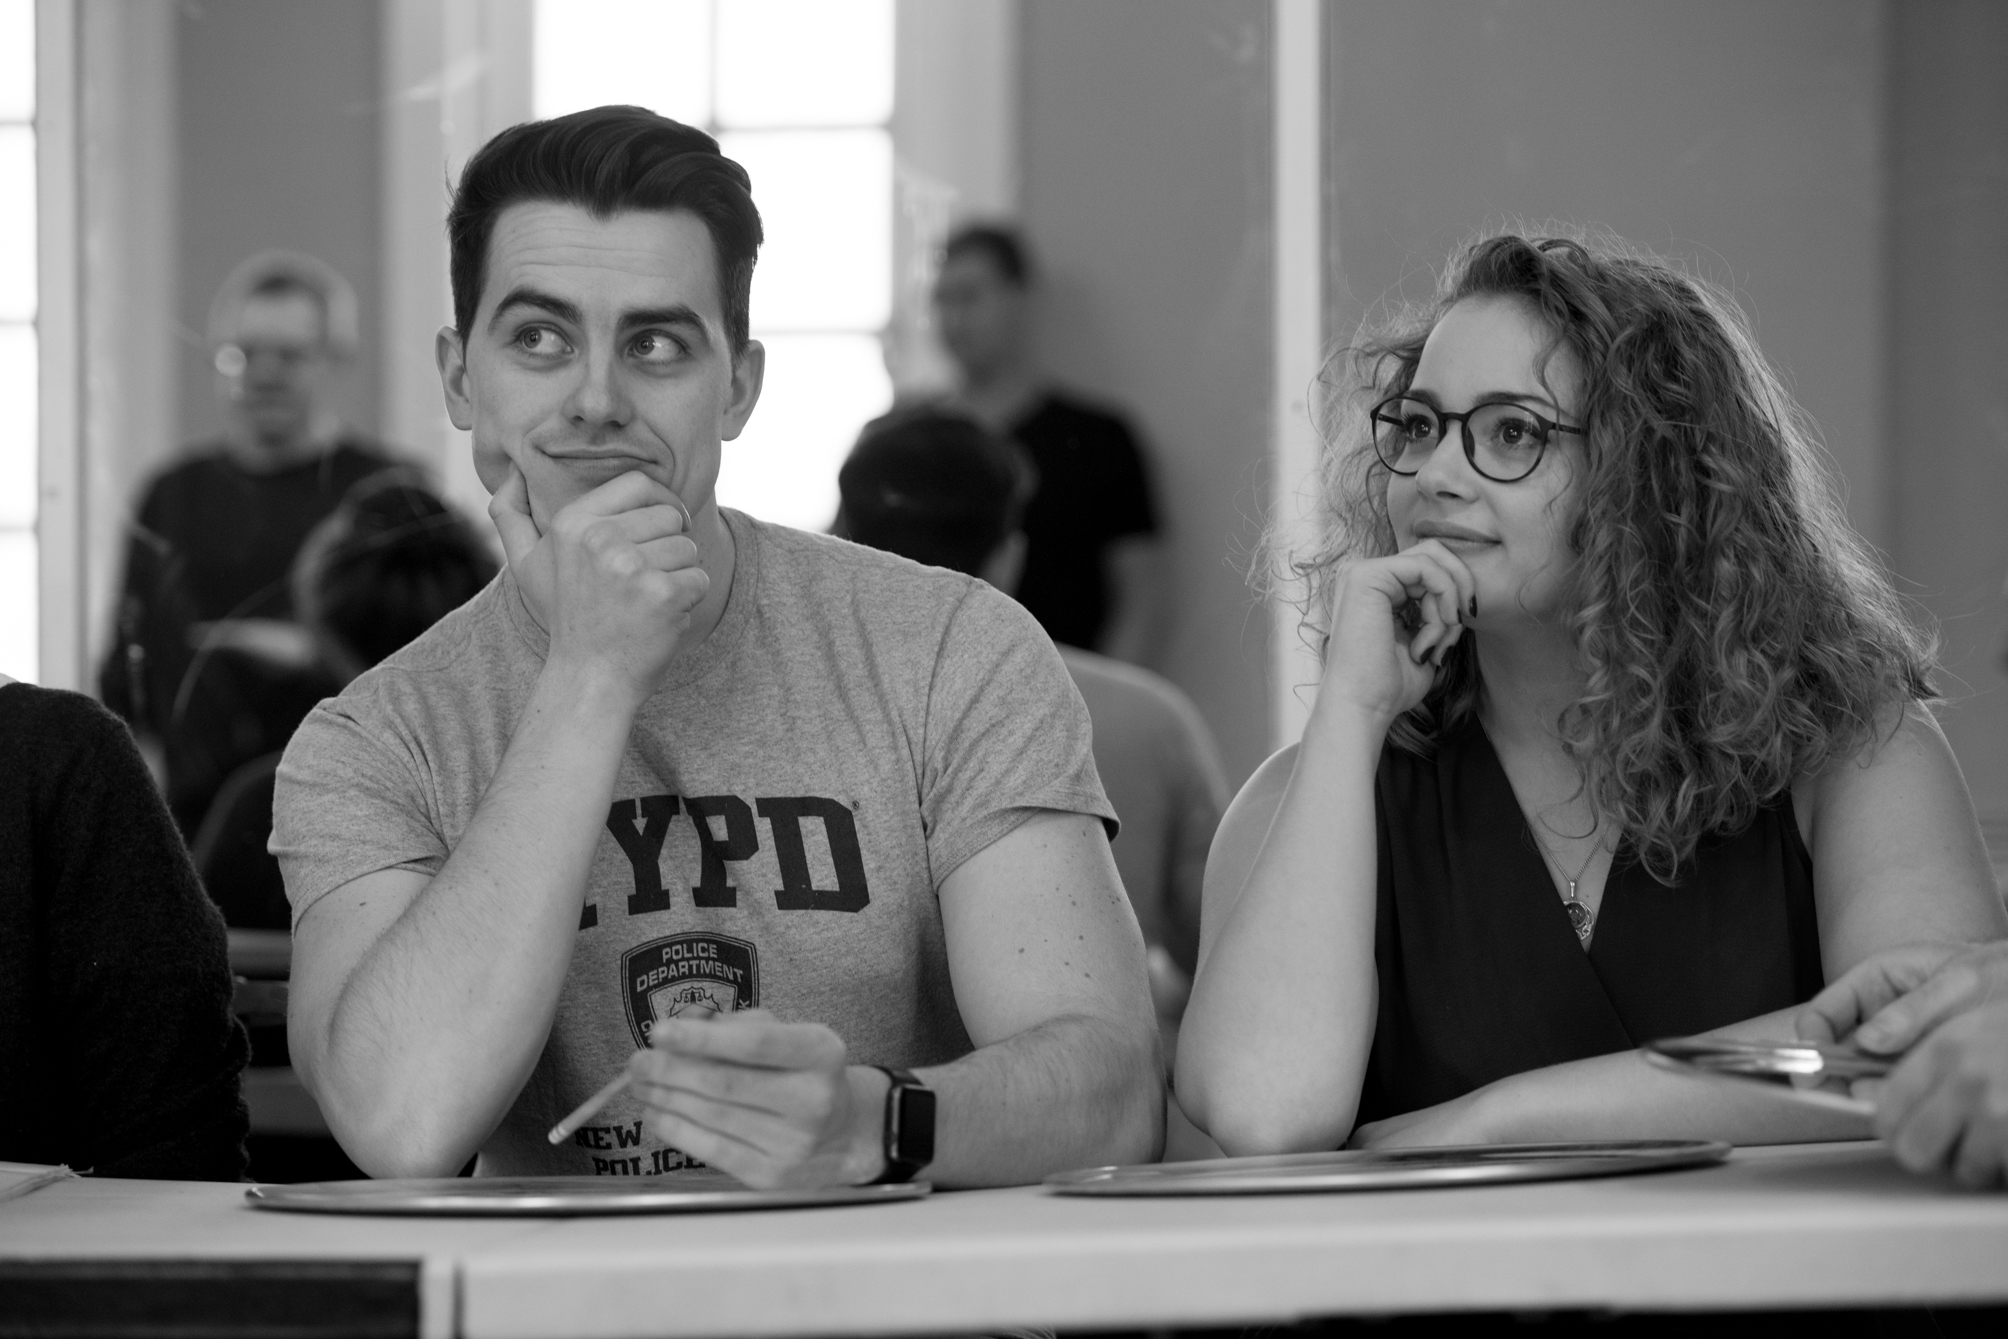 oliver-ormson-and-carrie-hope-fletcher-in-addams-family-rehearsals_credit-craig-sugden-2